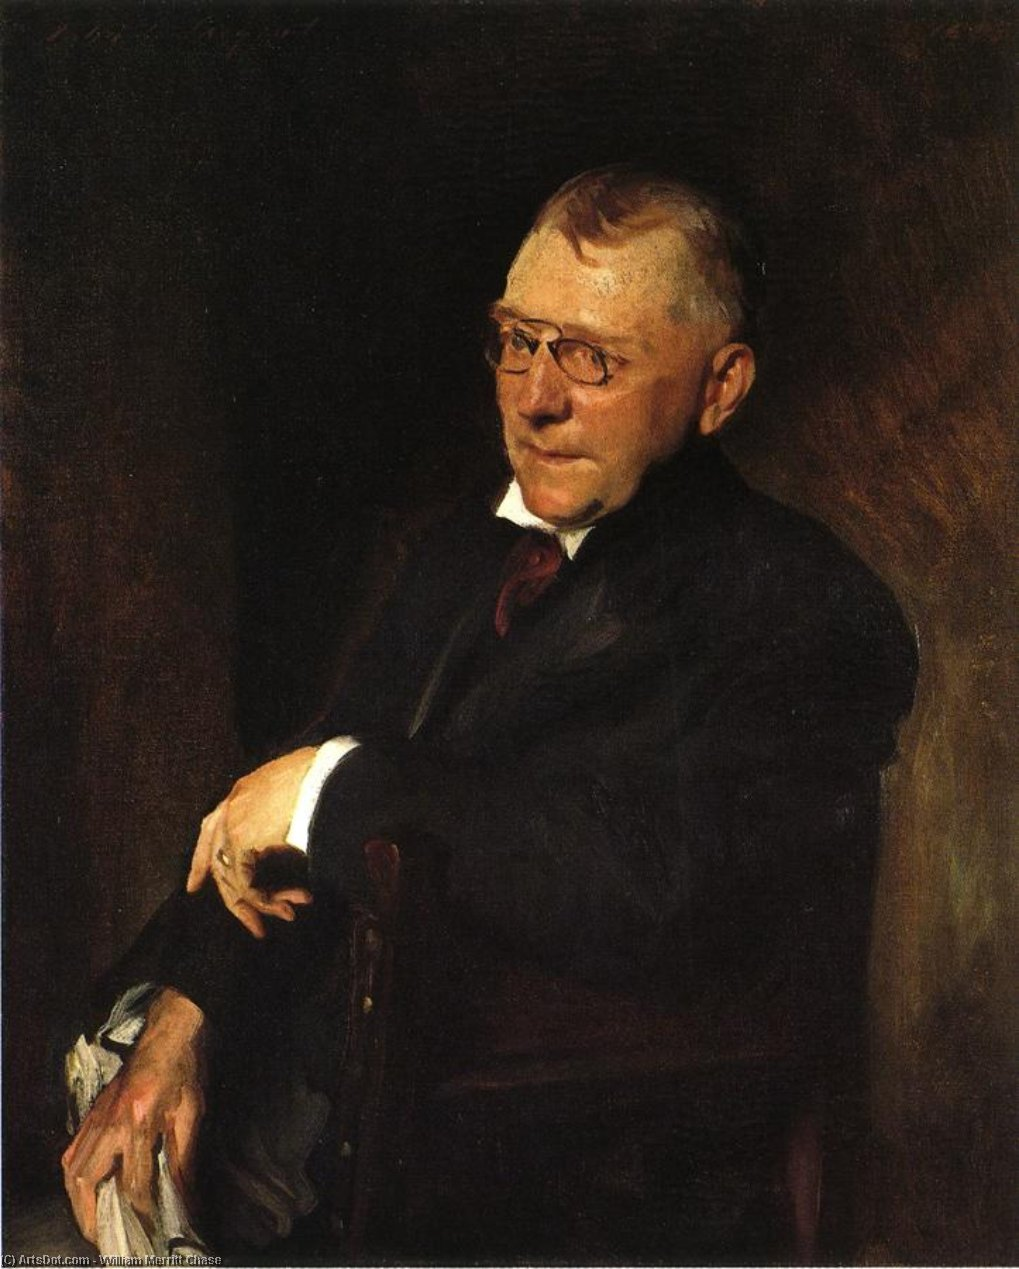 Retrato de James Whitcomb Riley, óleo sobre lienzo de William Merritt Chase (1849-1916, United States)